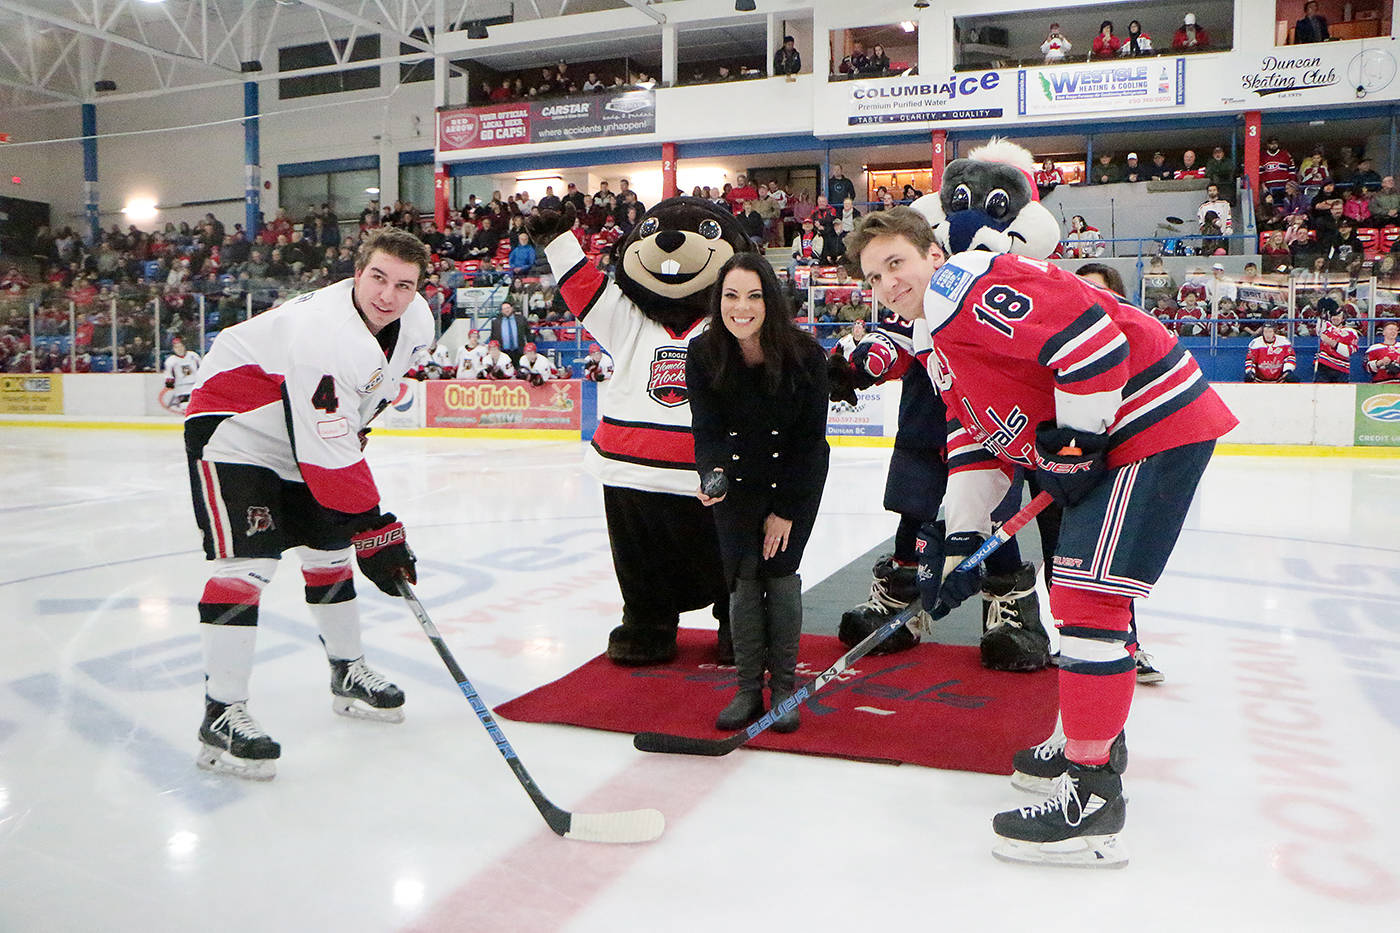 Rogers Hometown Hockey co-host Tara Slone drops the puck for a ceremonial faceoff between Cowichan Valley Capitals captain Troy MacTavish (right) and Alberni Valley Bulldogs captain Mitch Oliver prior to Saturday night's BCHL tilt, one of many highlights of the festival's visit to the Cowichan Valley last weekend. (Kevin Rothbauer/Citizen)                                Rogers Hometown Hockey co-host Tara Slone drops the puck for a ceremonial faceoff between Cowichan Valley Capitals captain Troy MacTavish (right) and Alberni Valley Bulldogs captain Mitch Oliver prior to Saturday night's BCHL tilt. (Kevin Rothbauer/Citizen)                                Rogers Hometown Hockey co-host Tara Slone drops the puck for a ceremonial faceoff between Cowichan Valley Capitals captain Troy MacTavish (right) and Alberni Valley Bulldogs captain Mitch Oliver prior to Saturday night's BCHL tilt. (Kevin Rothbauer/Citizen)